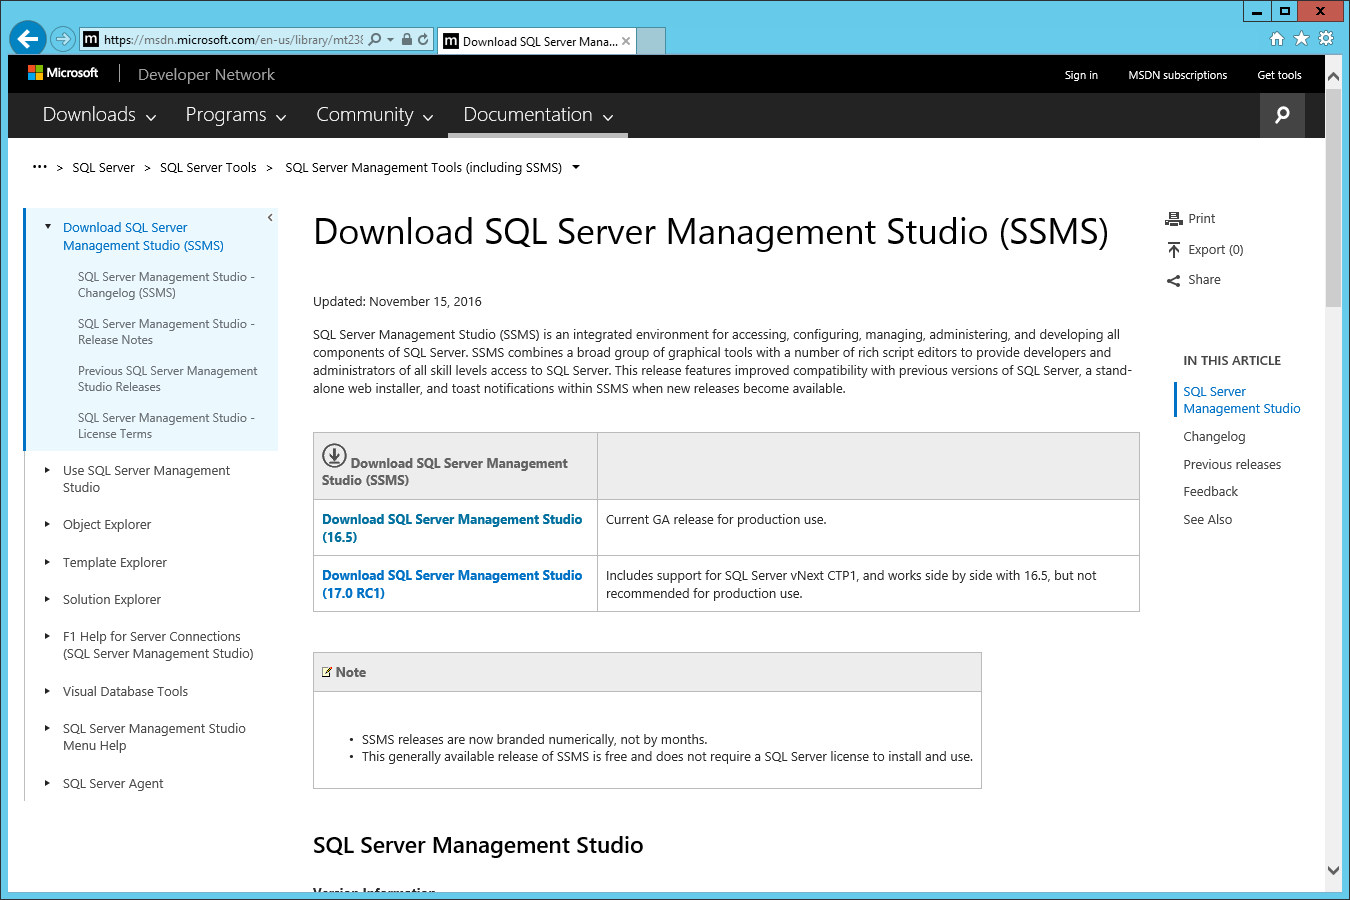 Download SQL Server Management Studio (SSMS)